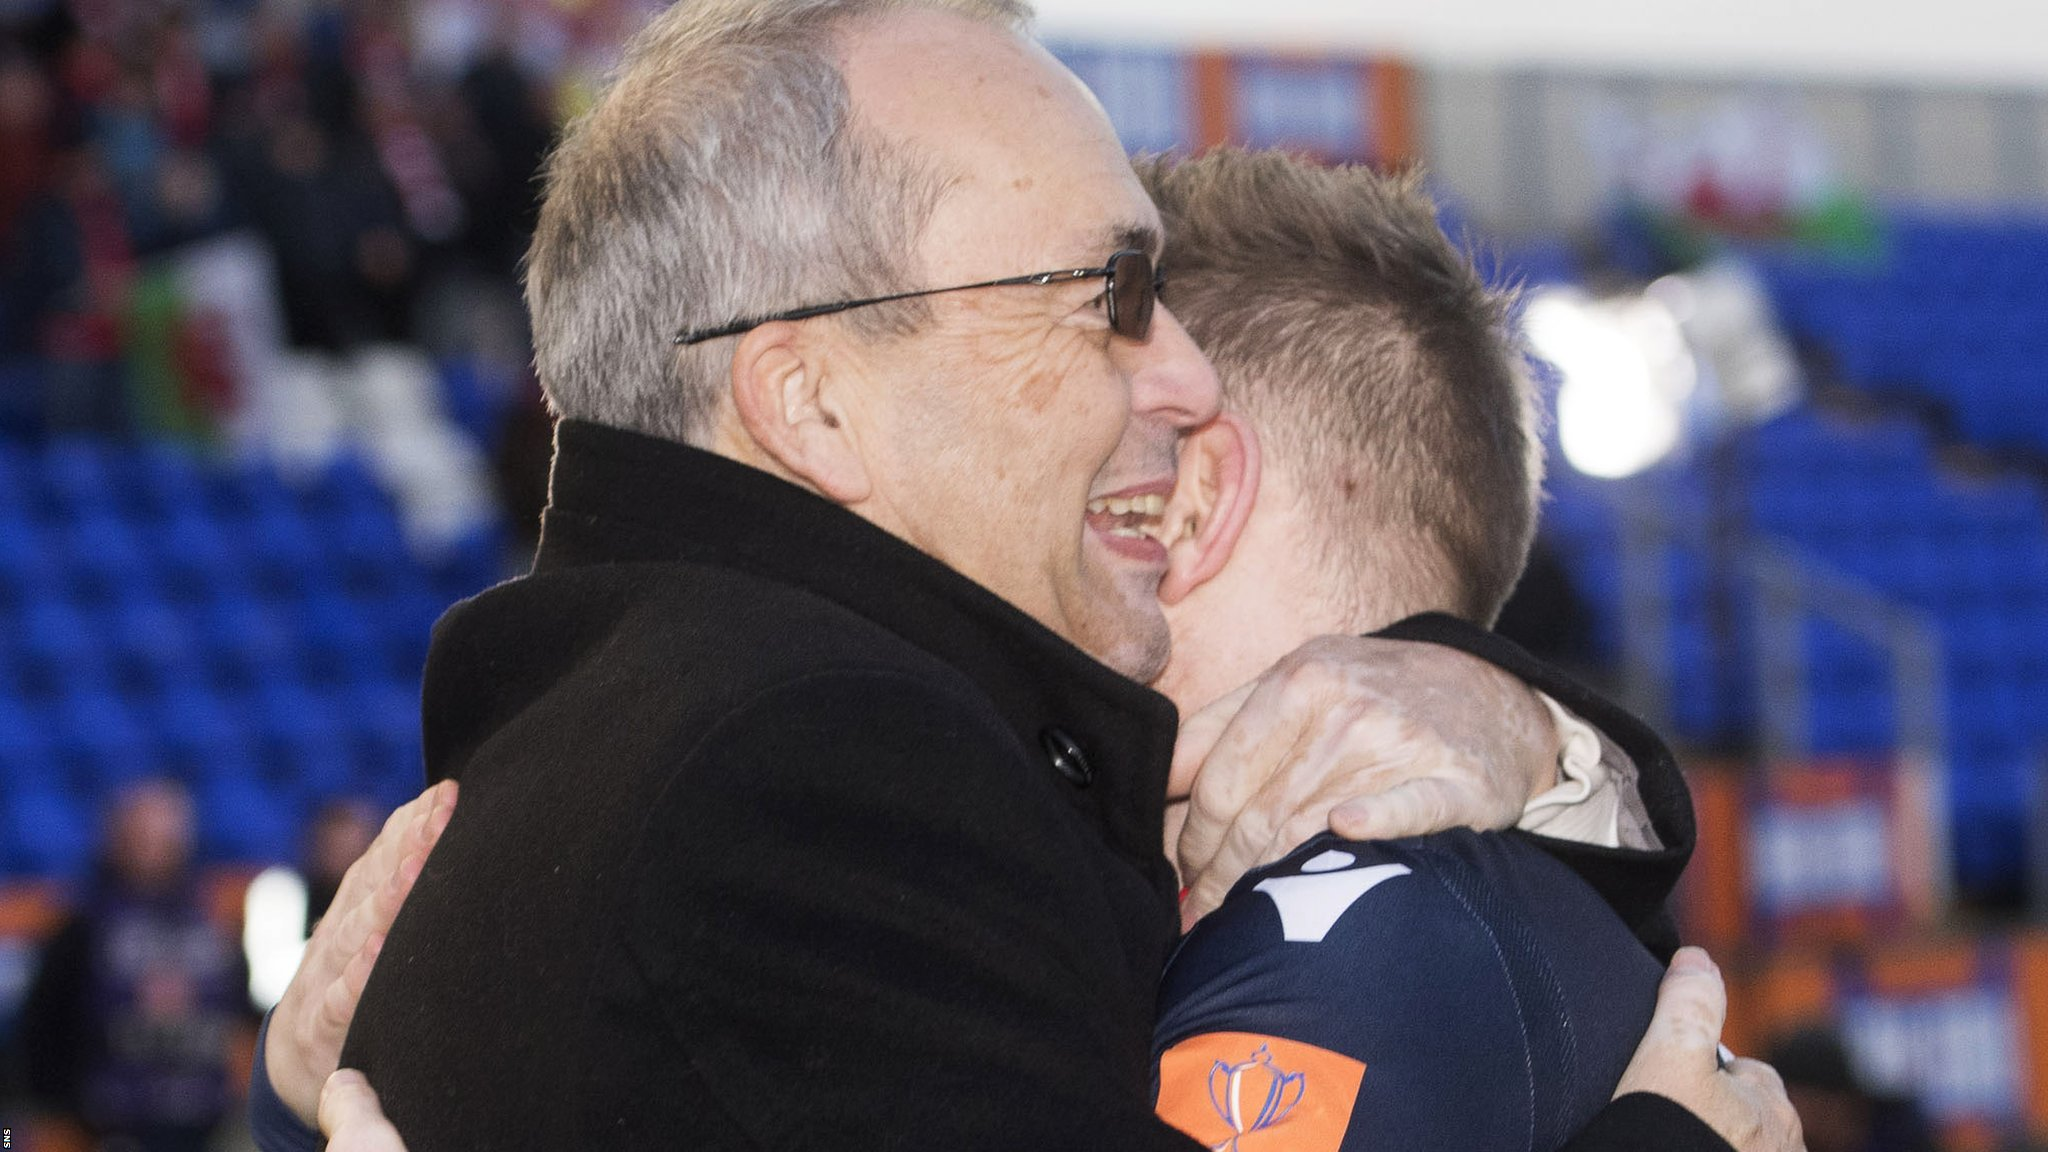 Ross County's promotion 'great for Highlands' - Roy MacGregor